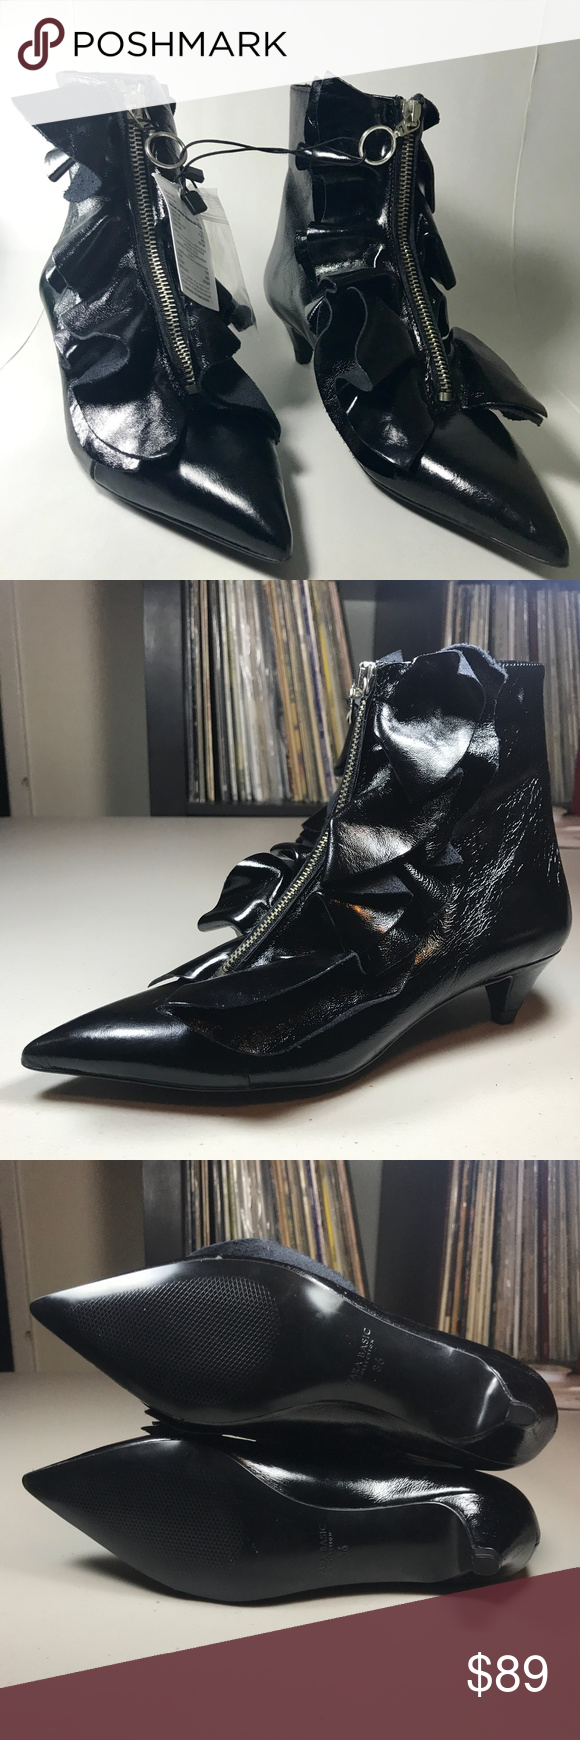 Zara Patent Leather Ruffle Ankle Boots Kitten Heel Fashion Deals Zara Shoes Patent Boots